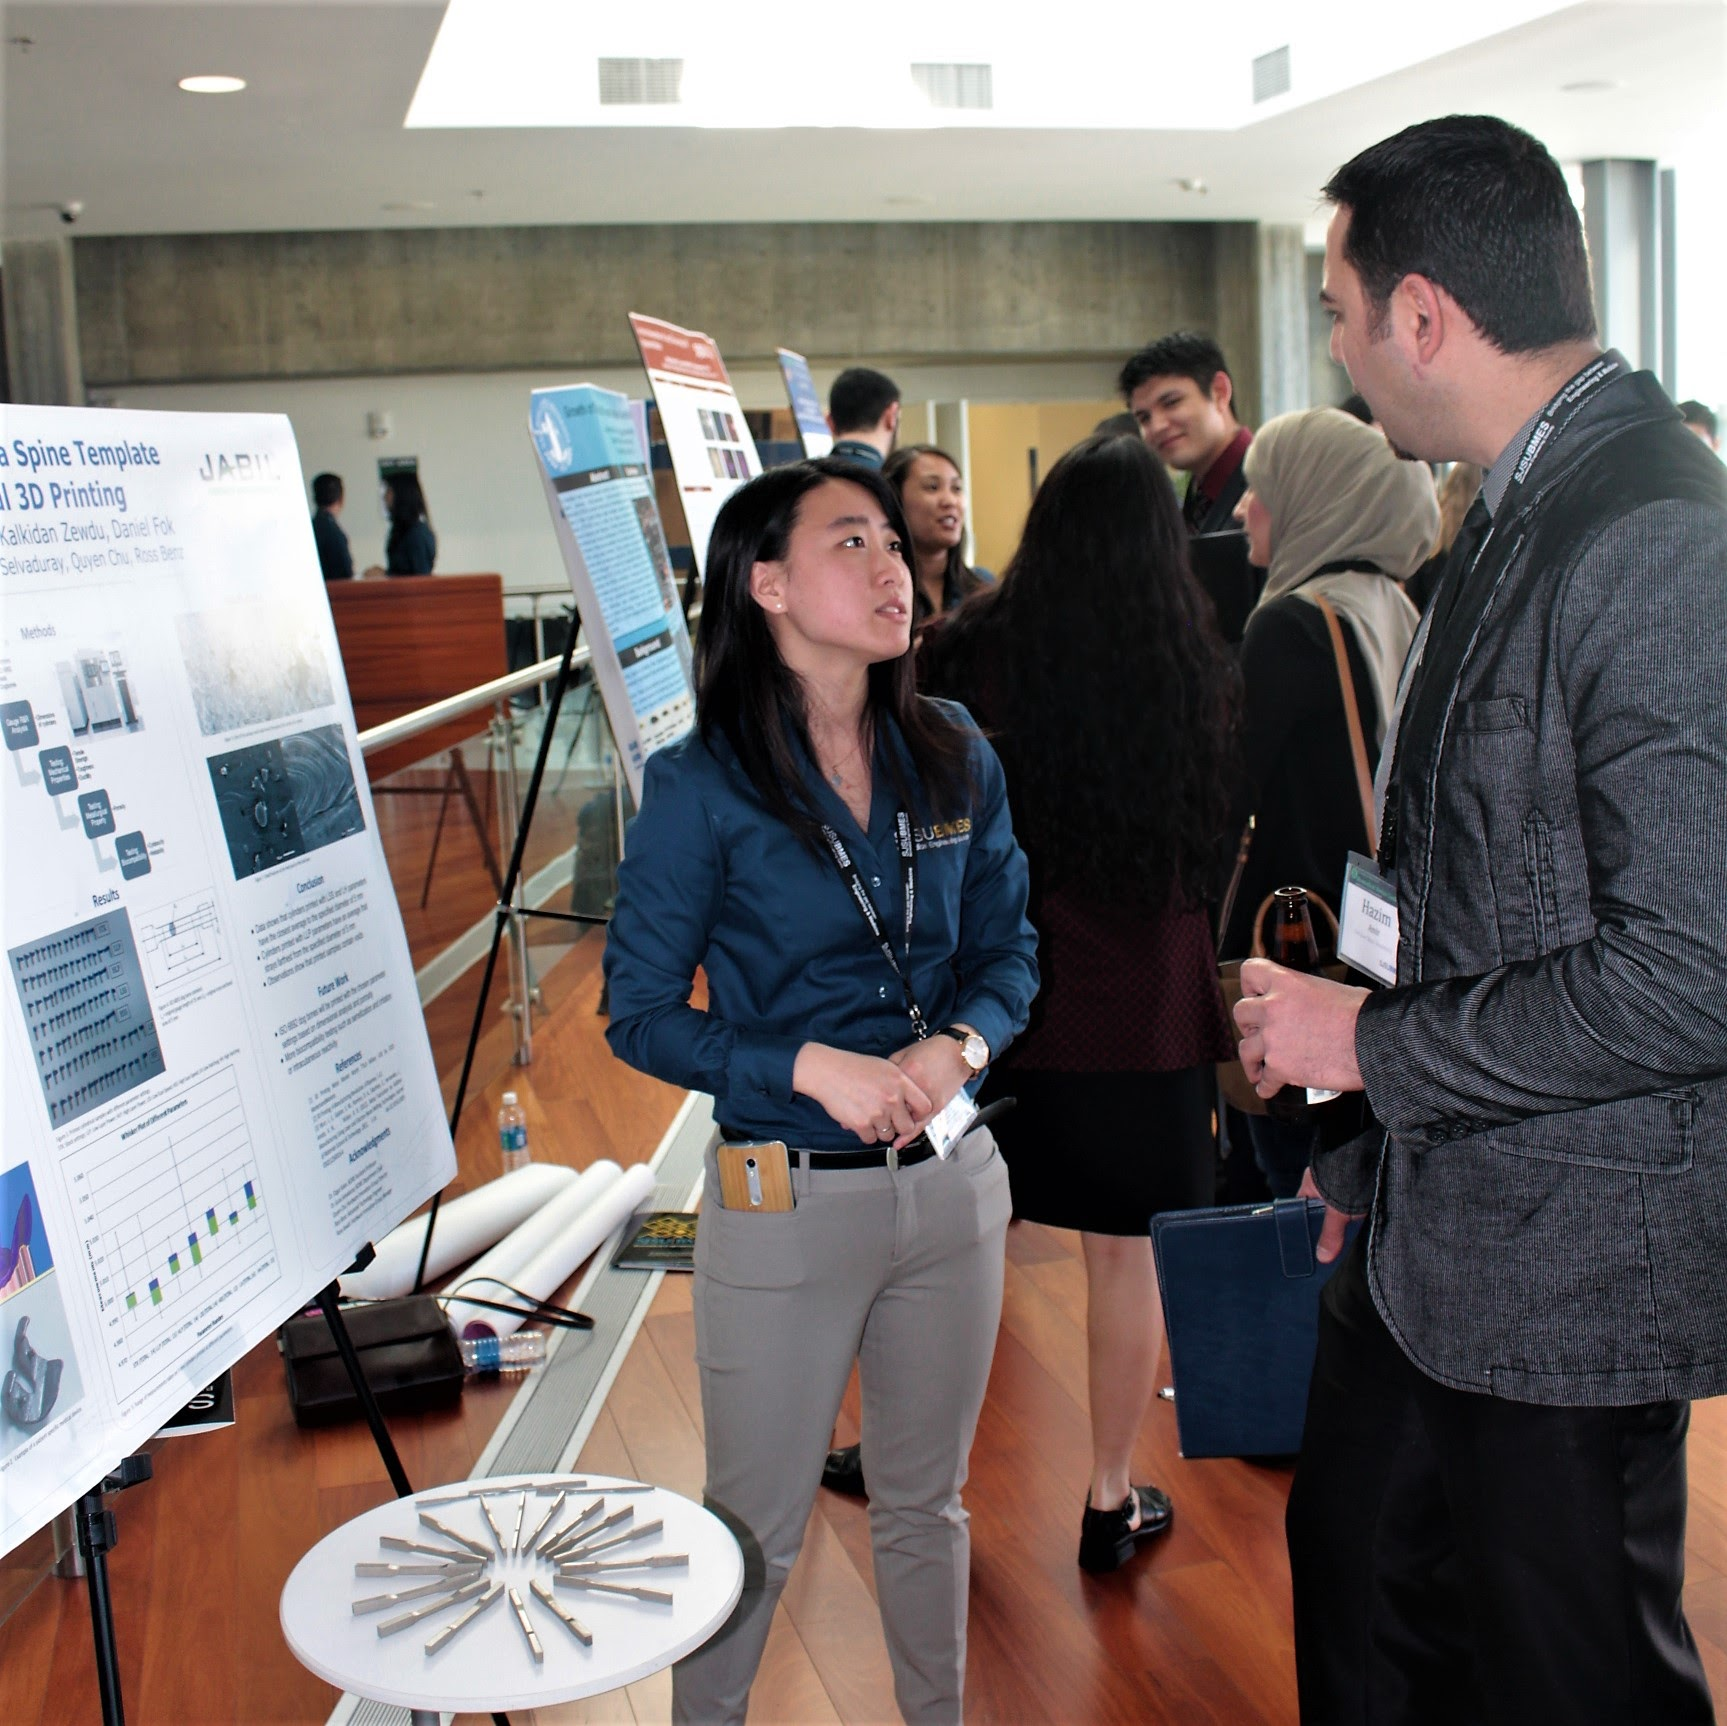 Our Student Poster Session